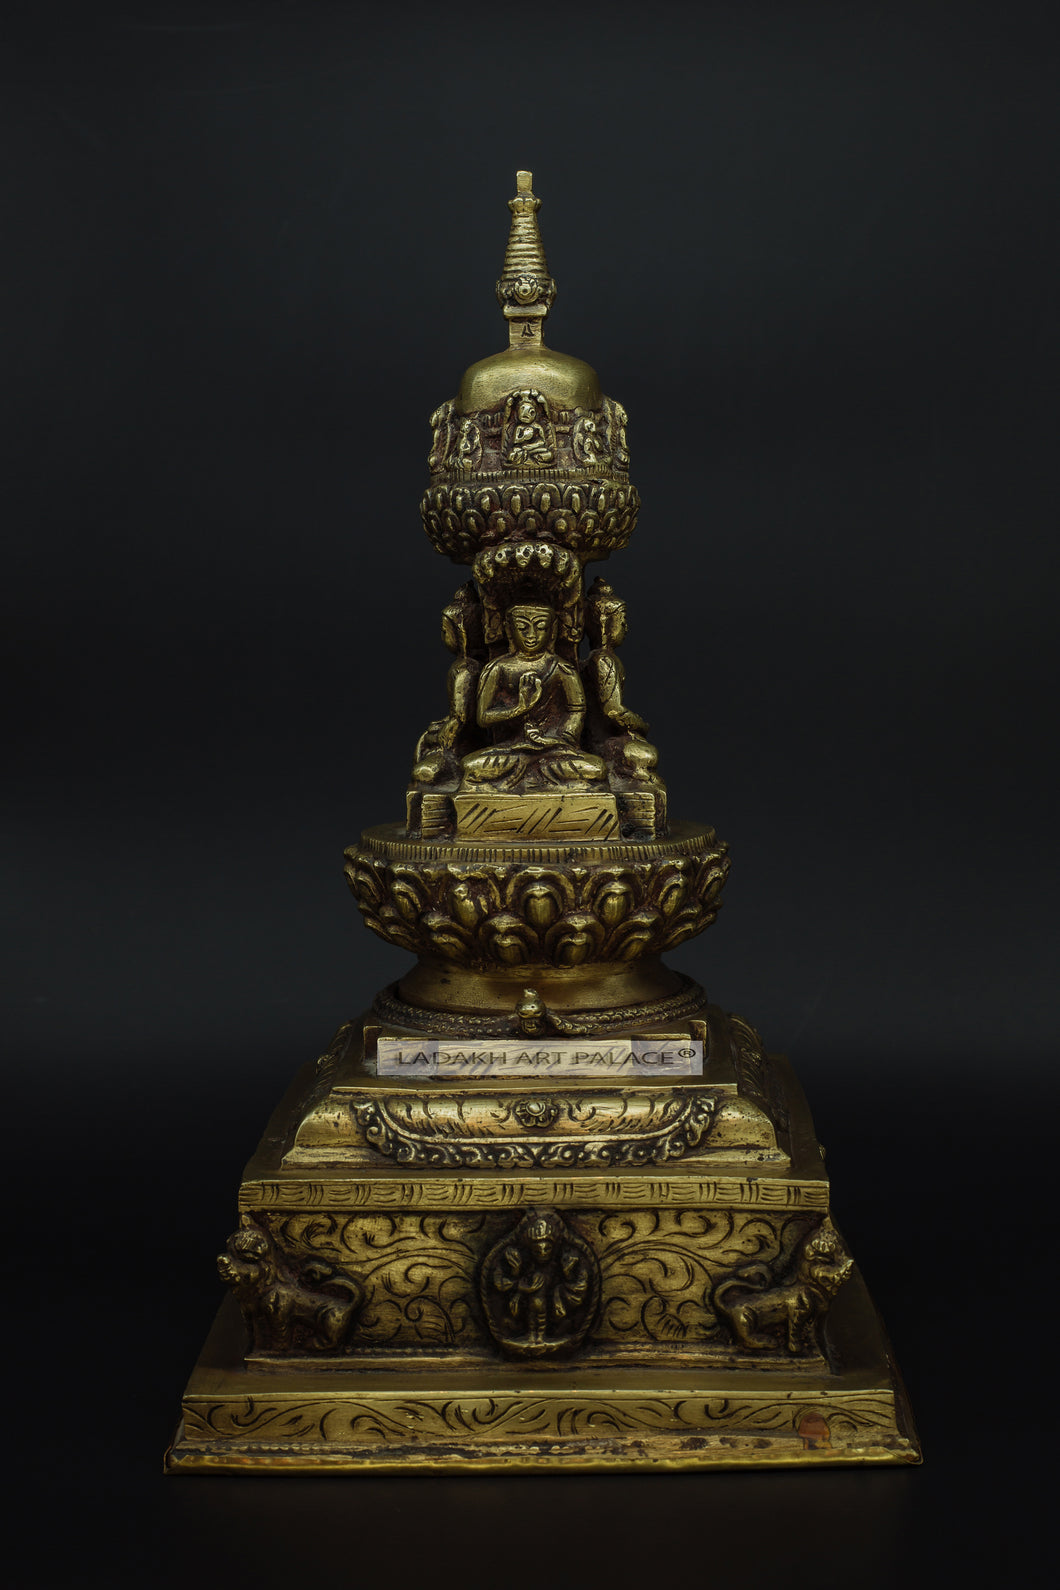 Brass Buddha stupa - the ladakh art palace